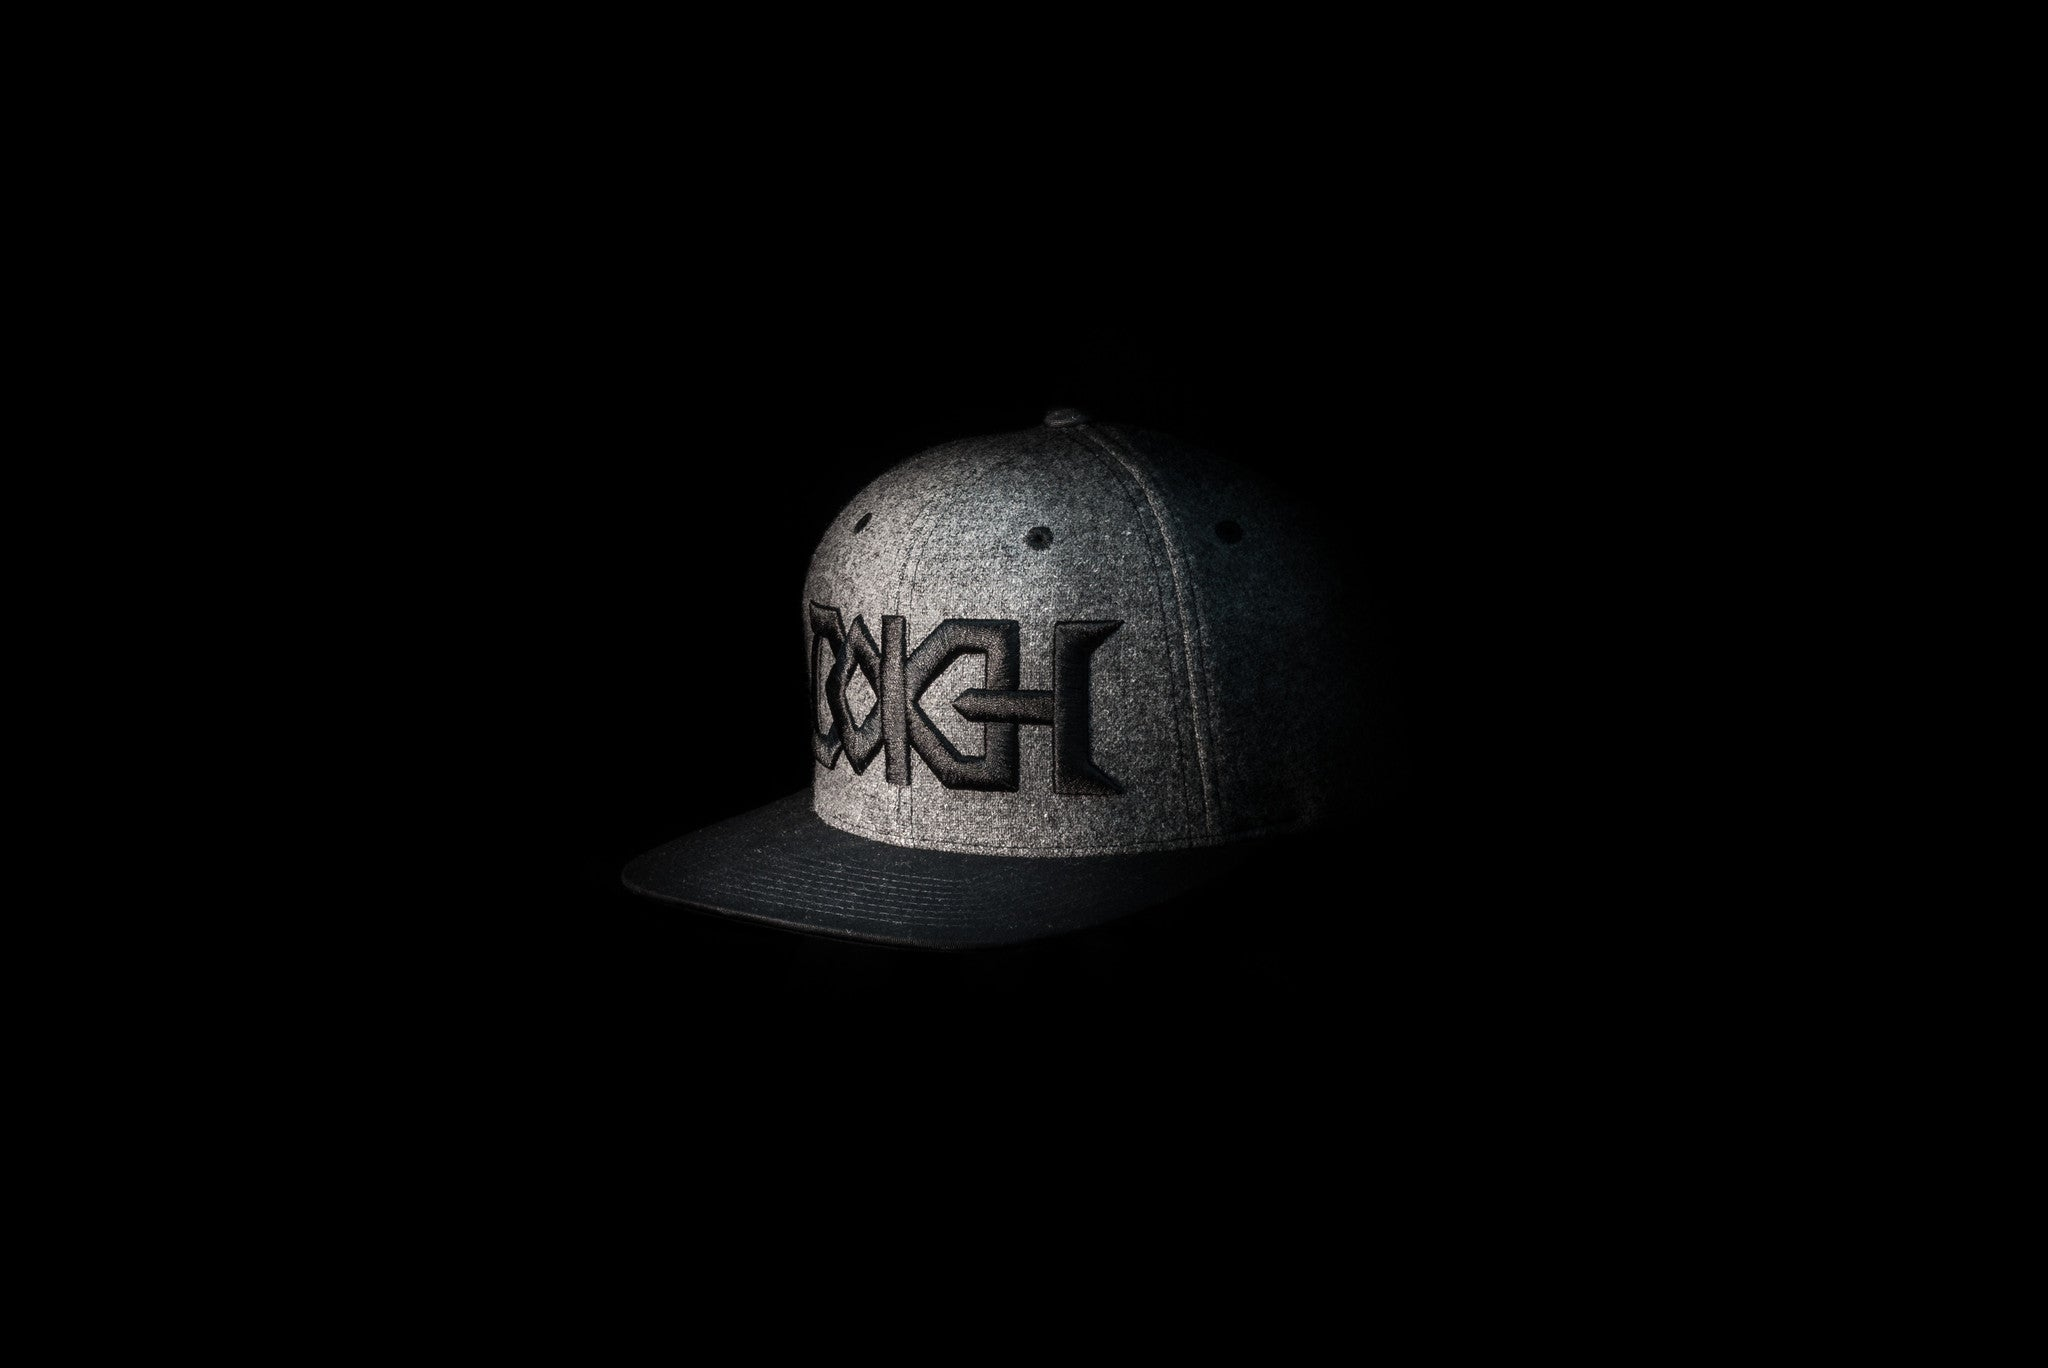 Bokeh = Metal (Dark Gray & Black)